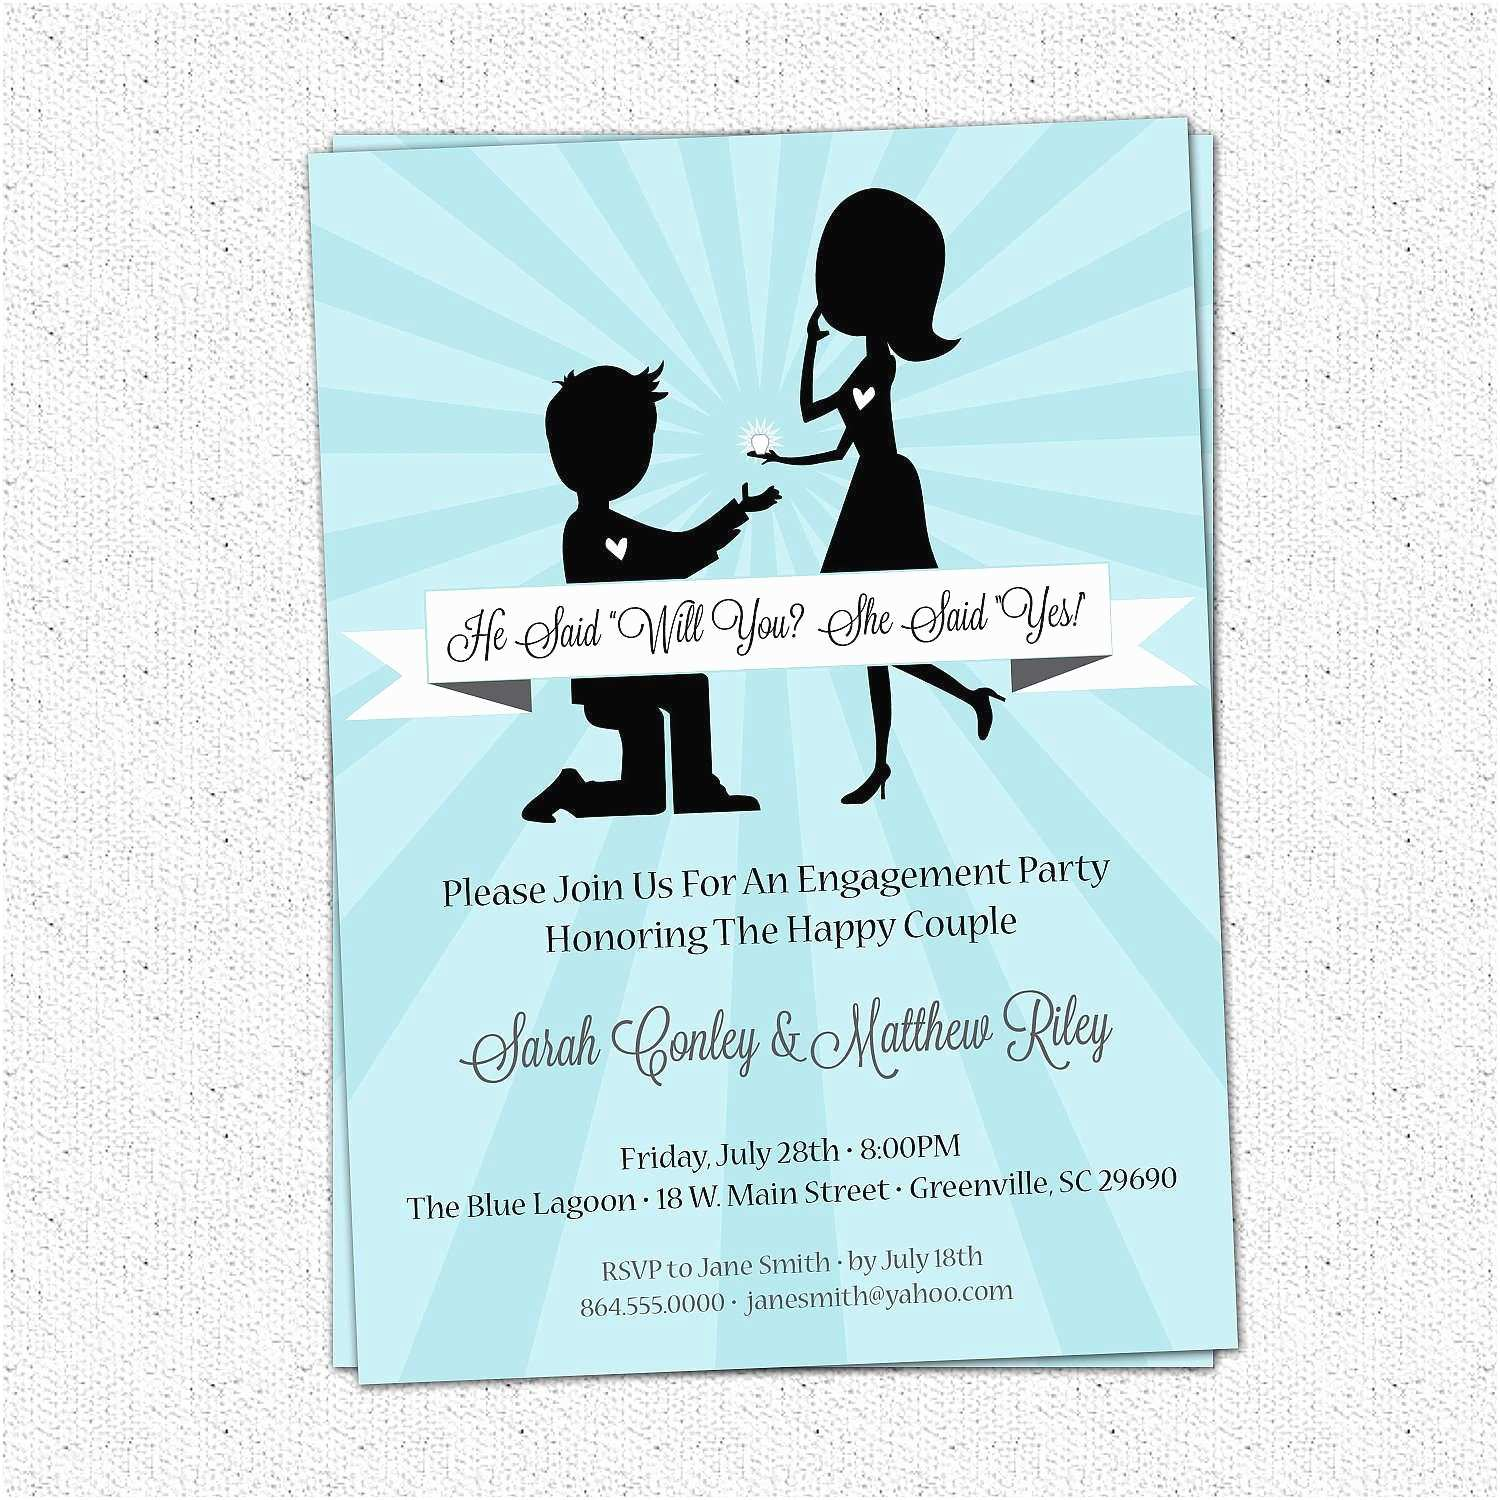 Wedding Engagement Party Invitations Engagement Party Invitation Templates